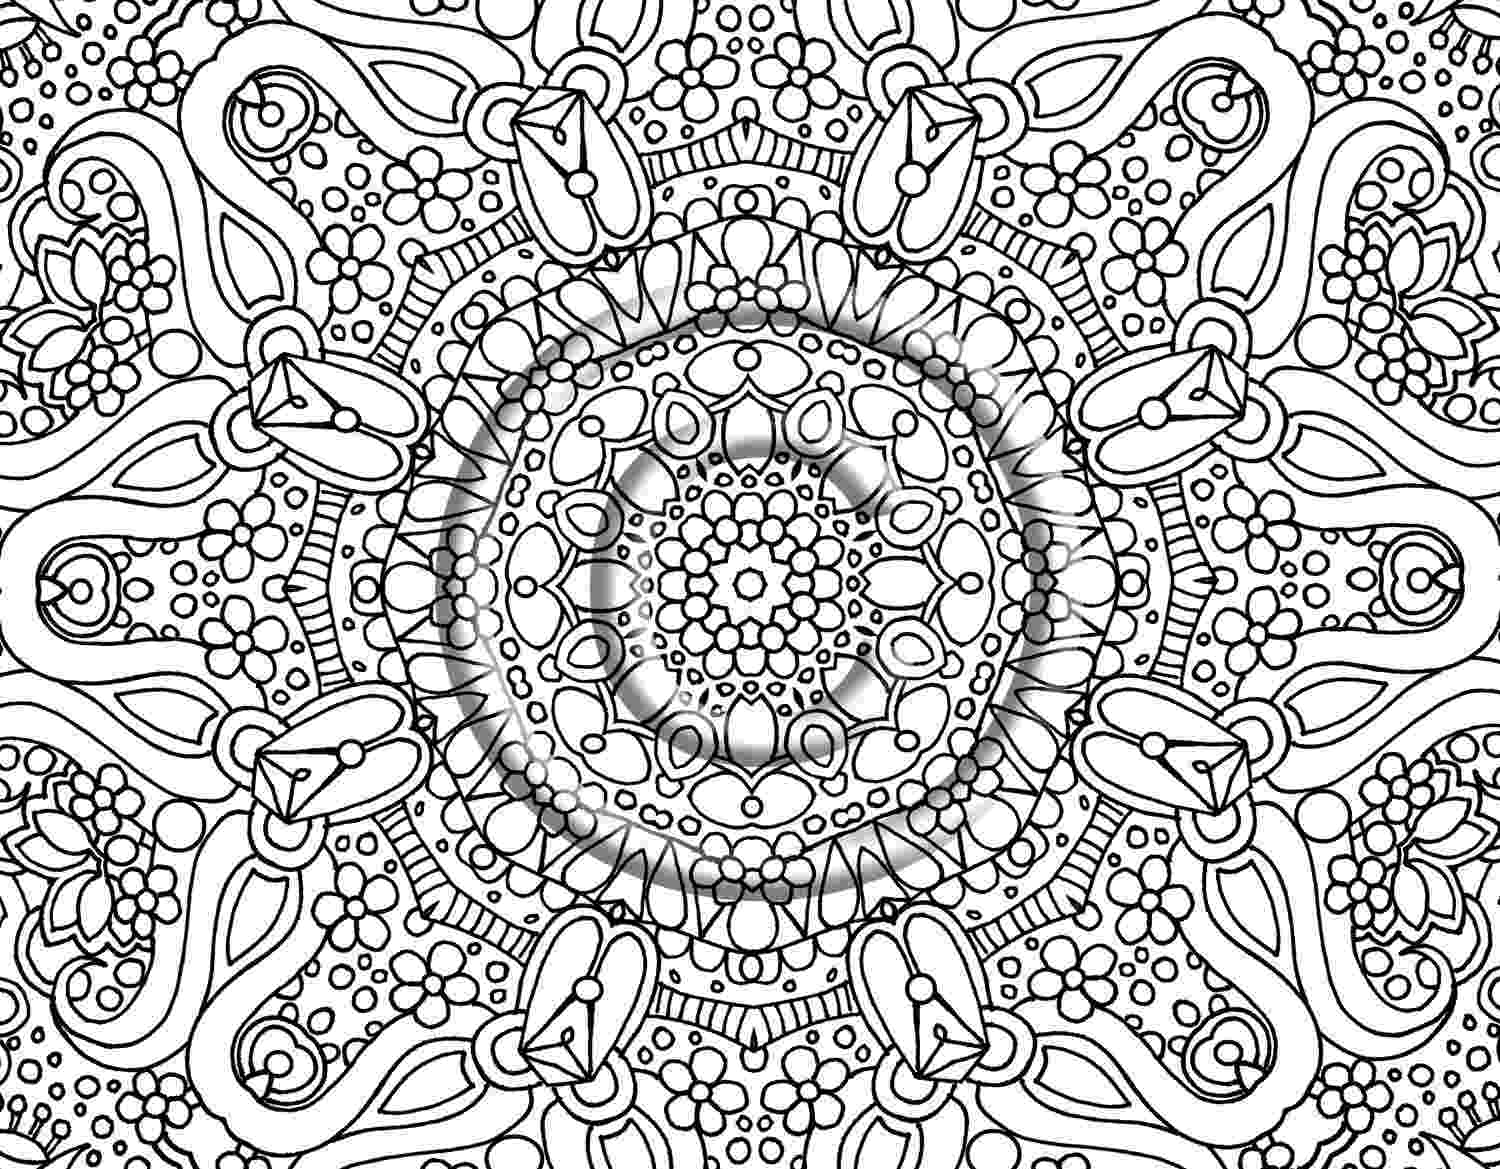 adult coloring pages abstract free printable abstract coloring pages for adults adult coloring pages abstract